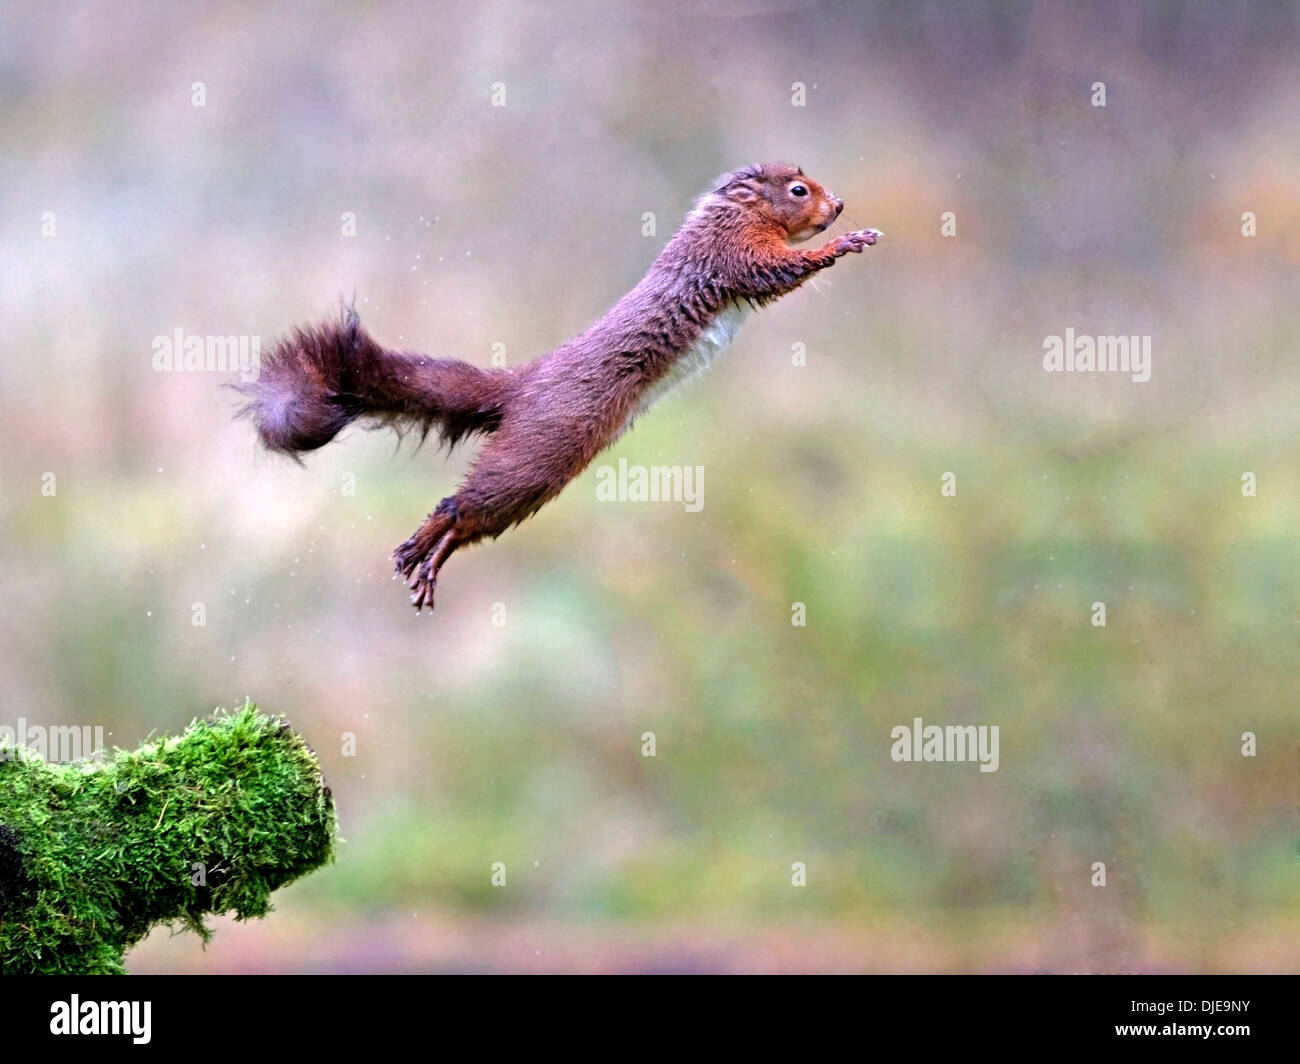 Red squirrel leaping from branch, jumping - Stock Image